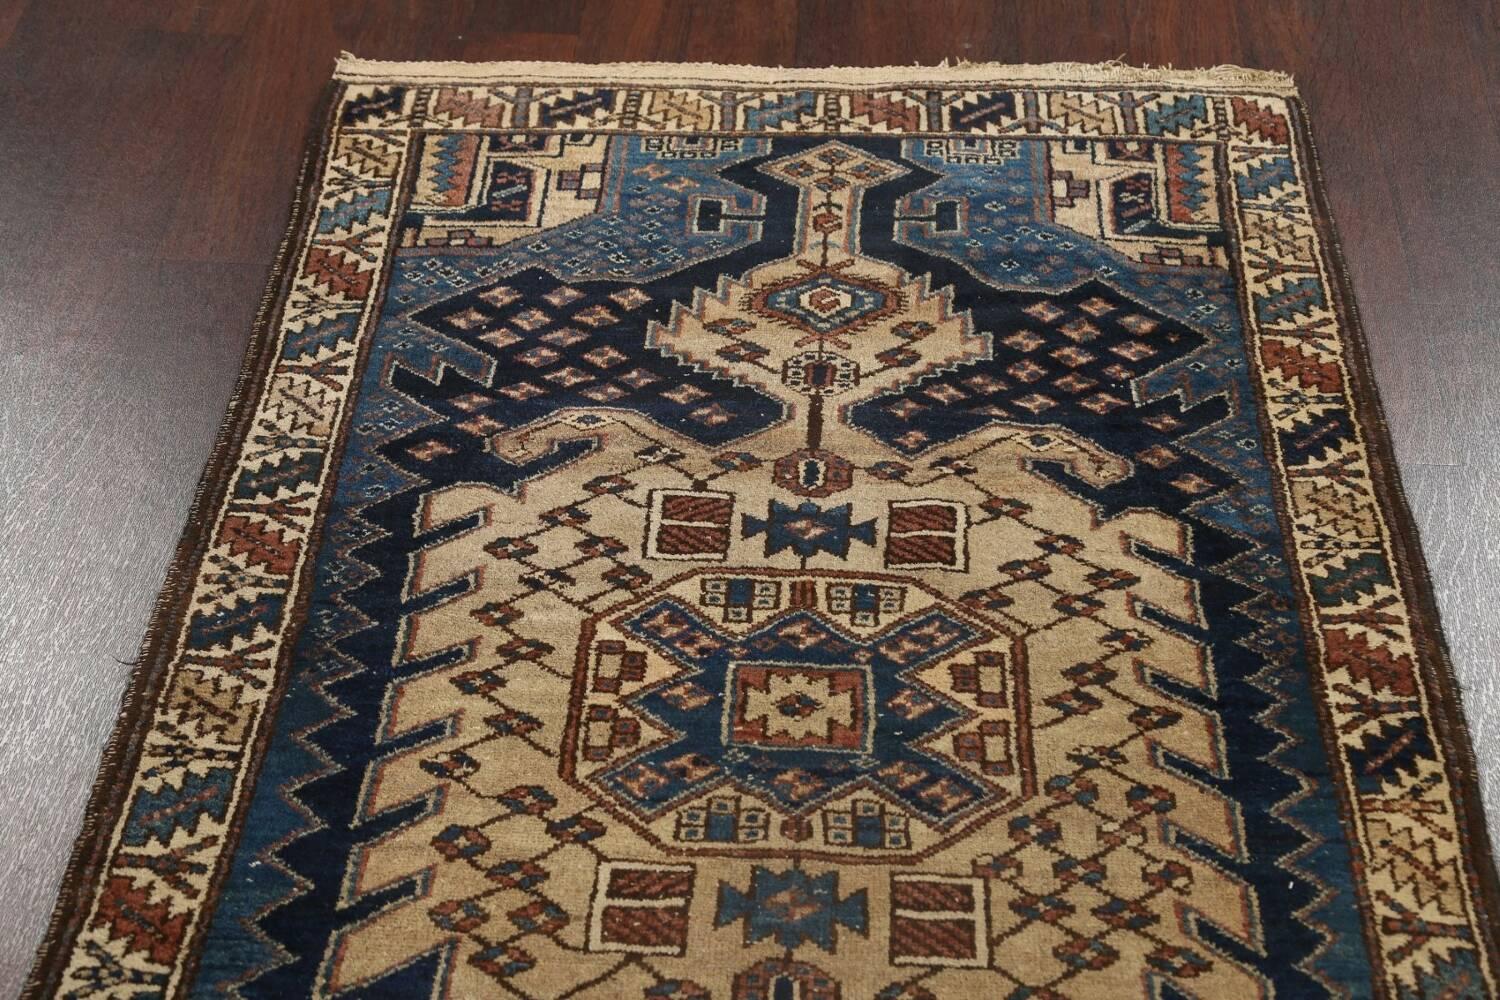 Pre-1900 Antique Vegetable Dye Malayer Persian Runner Rug 4x13 image 14